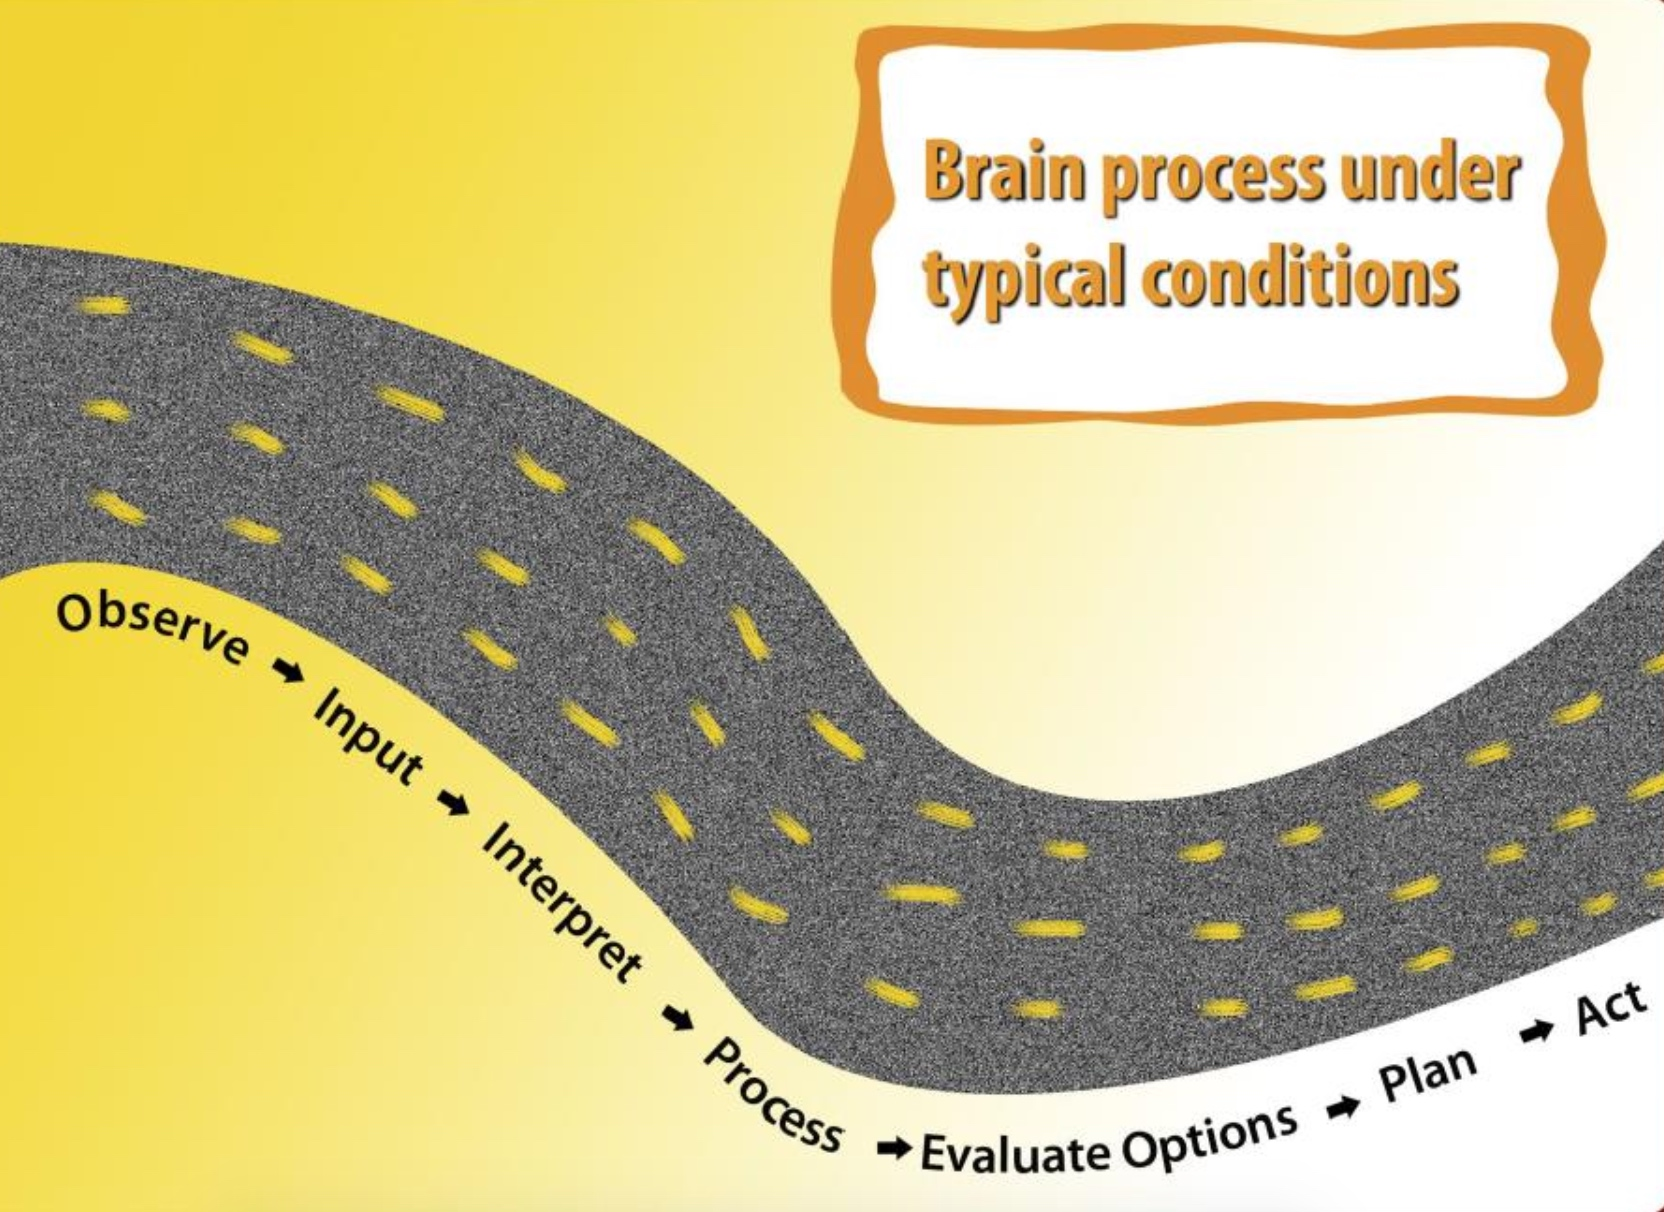 brain process under typical conditions